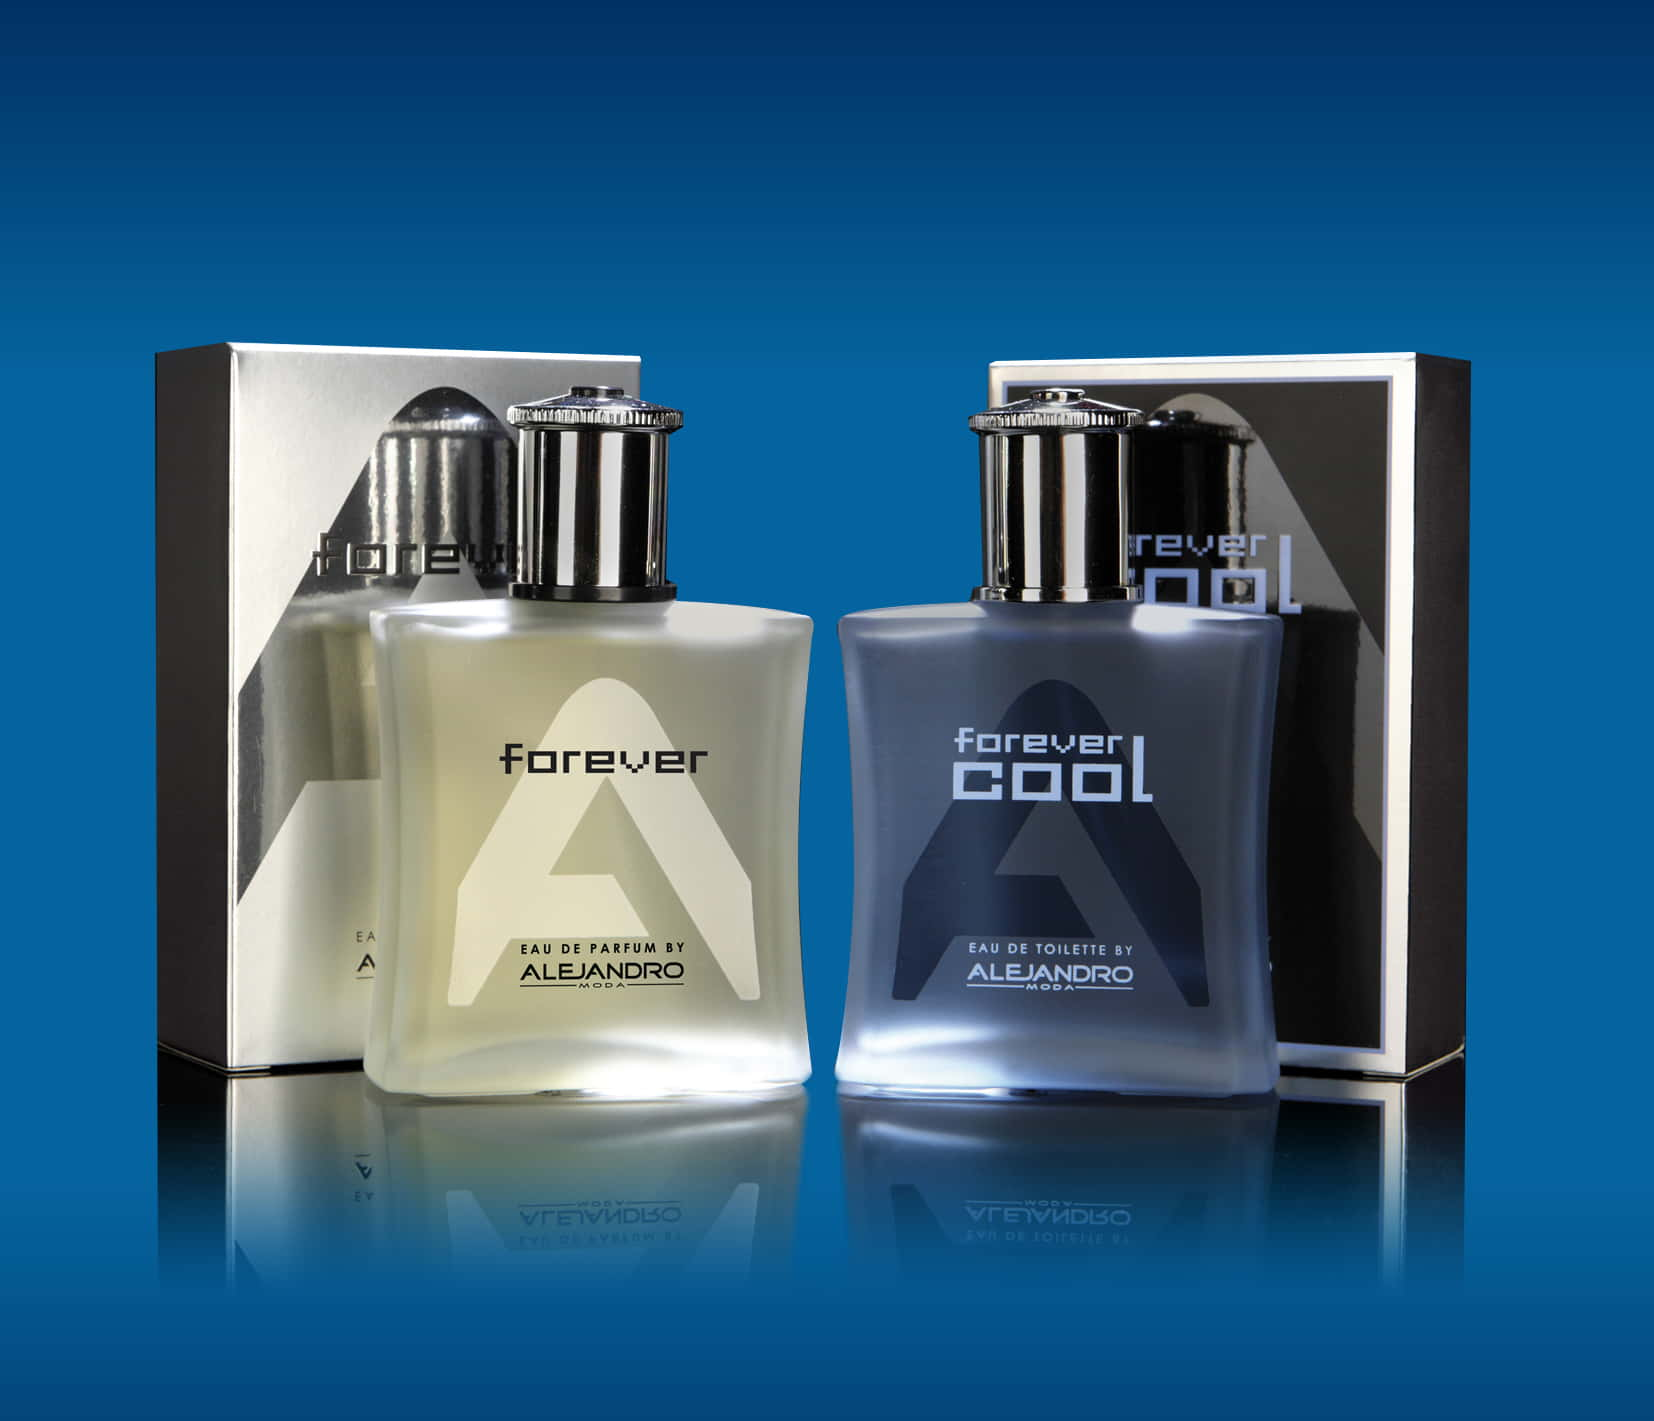 perfumes Forever y Forever Cool